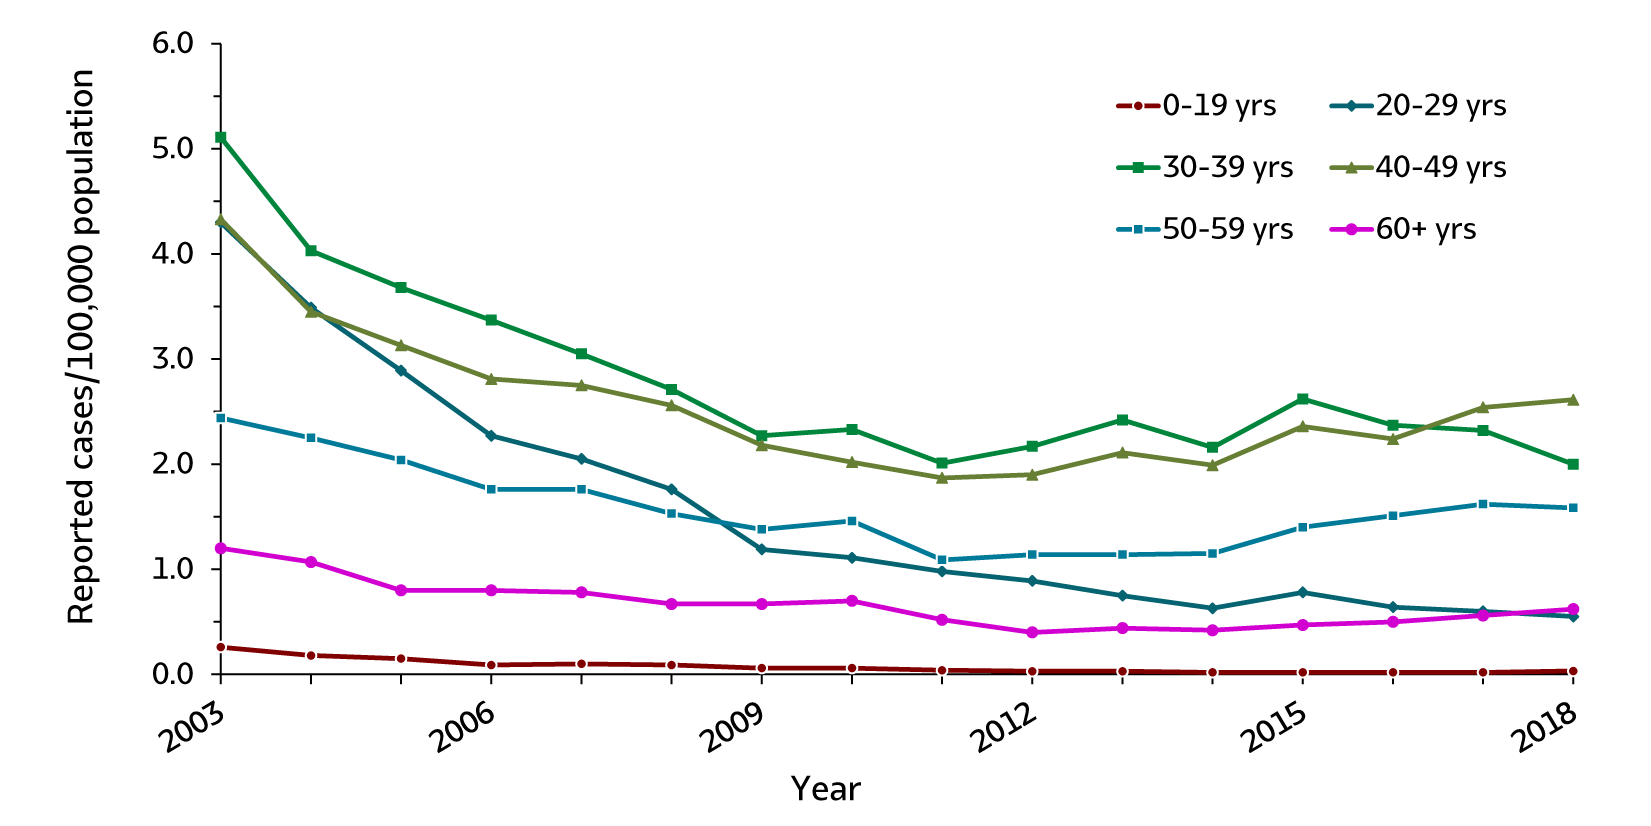 Figure 2.4. This line graph shows rates of acute hepatitis B by age groups (0 – 19 years, 20 – 29 years, 30 – 39 years, 40 – 49 years, 50 – 59 years, and 60 years and older) for 2003 through 2018. For all age groups the rates of acute hepatitis B generally declined from 2003 through 2009 and remained stable from 2009 through 2018.  Persons aged 30-40 years represented over half of the acute hepatitis B case reports submitted to CDC in 2018.